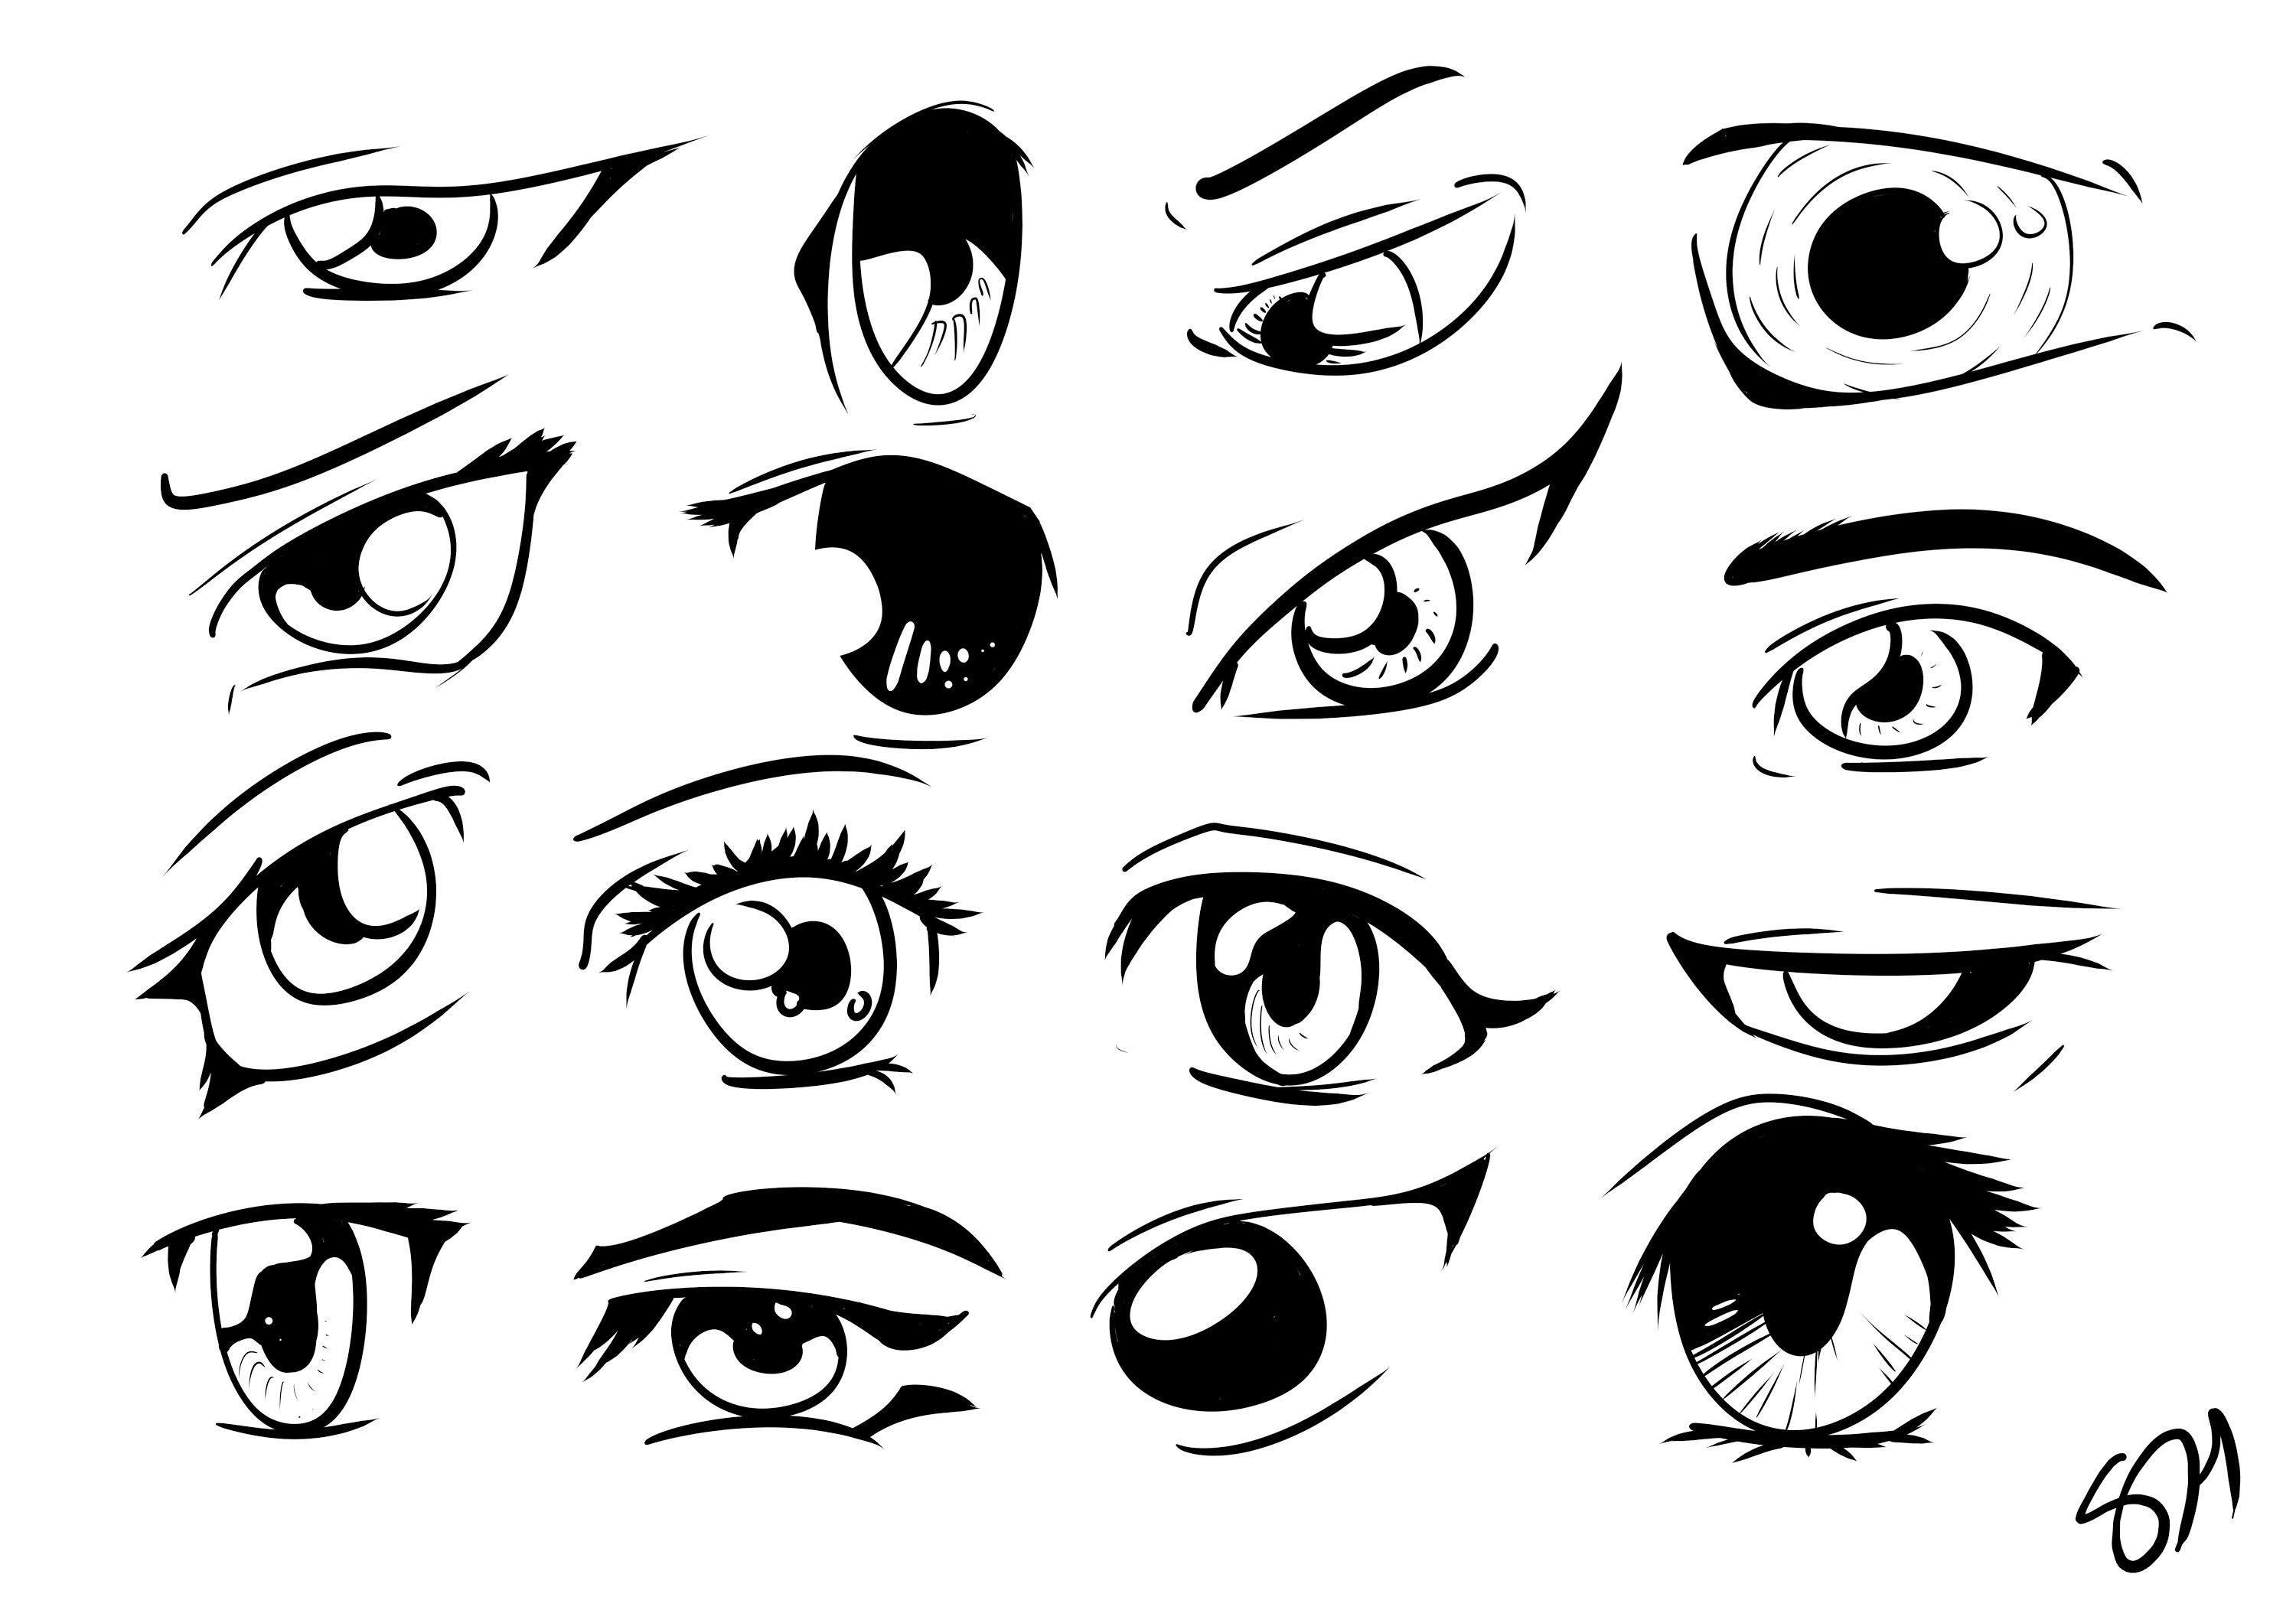 How To Draw Manga Anime Eyes 16 Different Eyes In Manga Studio 5 Anime Eyes Manga Drawing Manga Studio